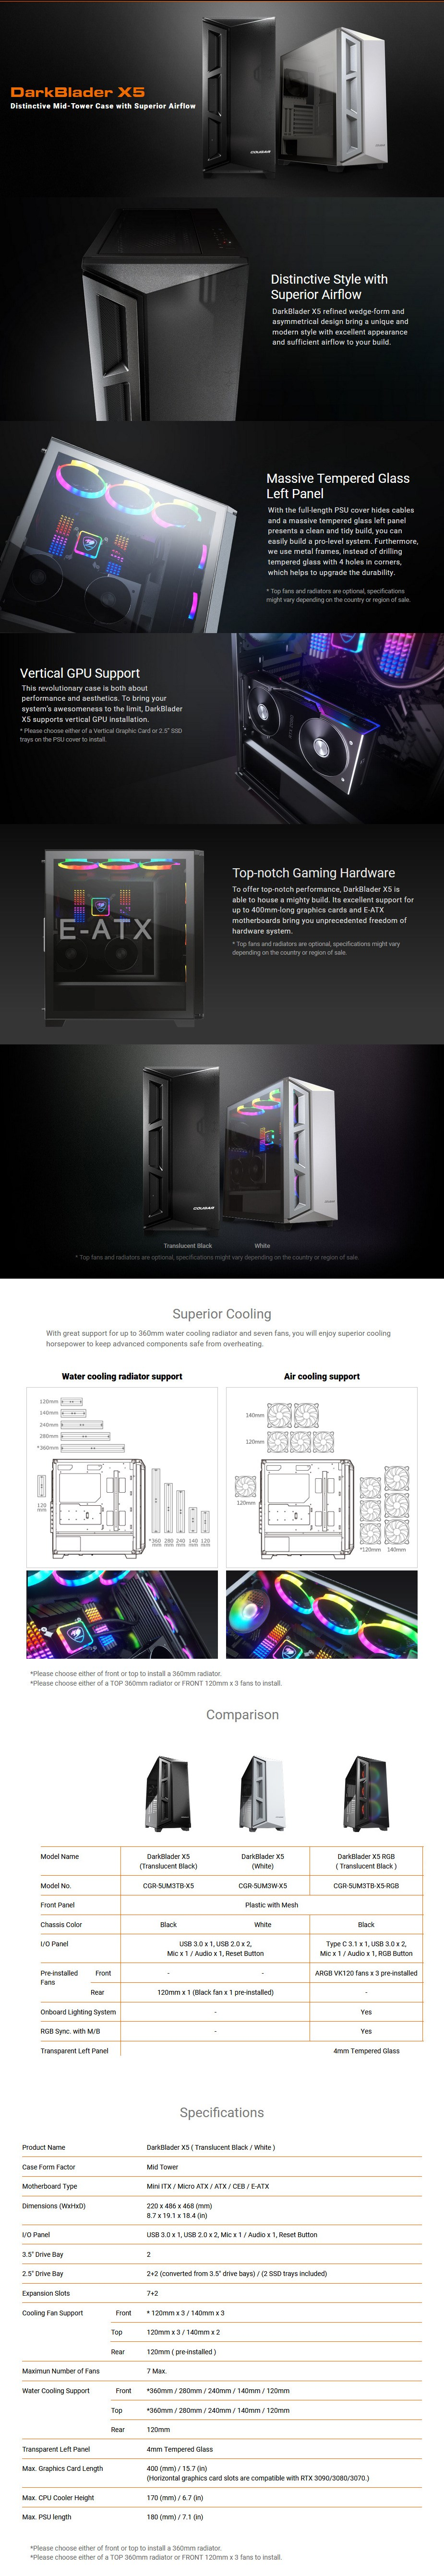 Cougar DarkBlader X5 Tempered Glass E-ATX Mid Tower Case - White - Overview 1